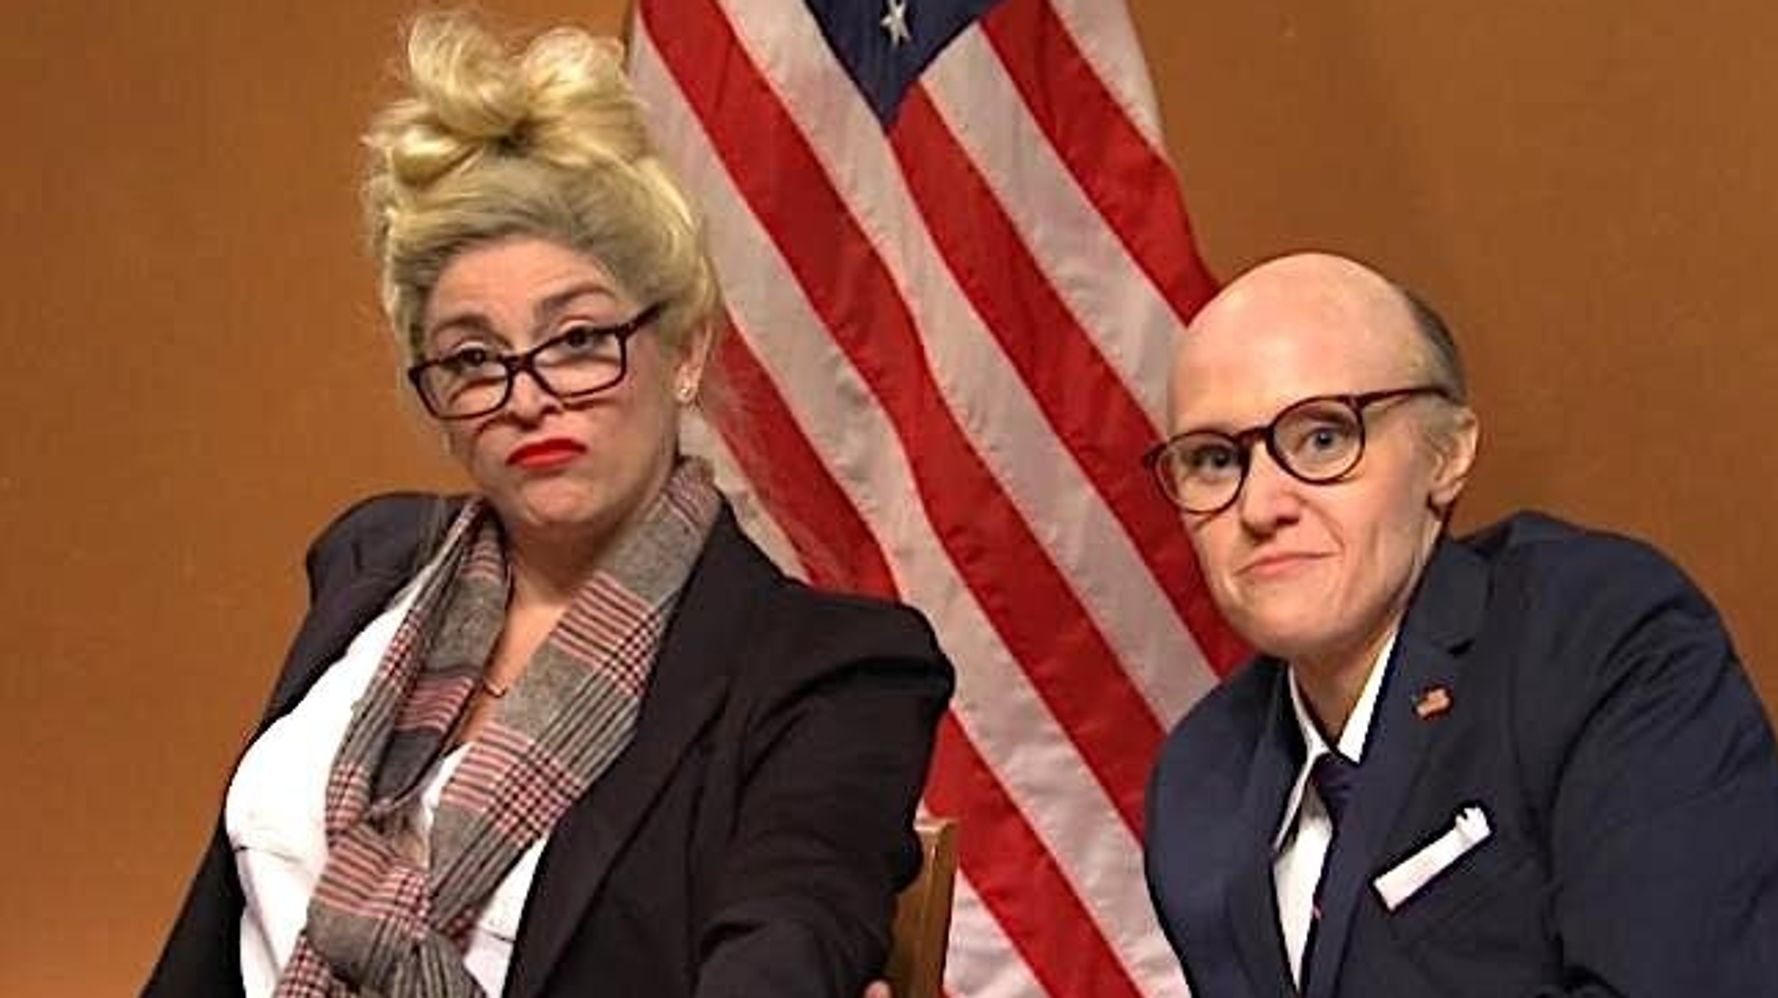 'Melissa Carone' Testifies On 'SNL' She Saw Dead People Vote And Signed An 'After David'